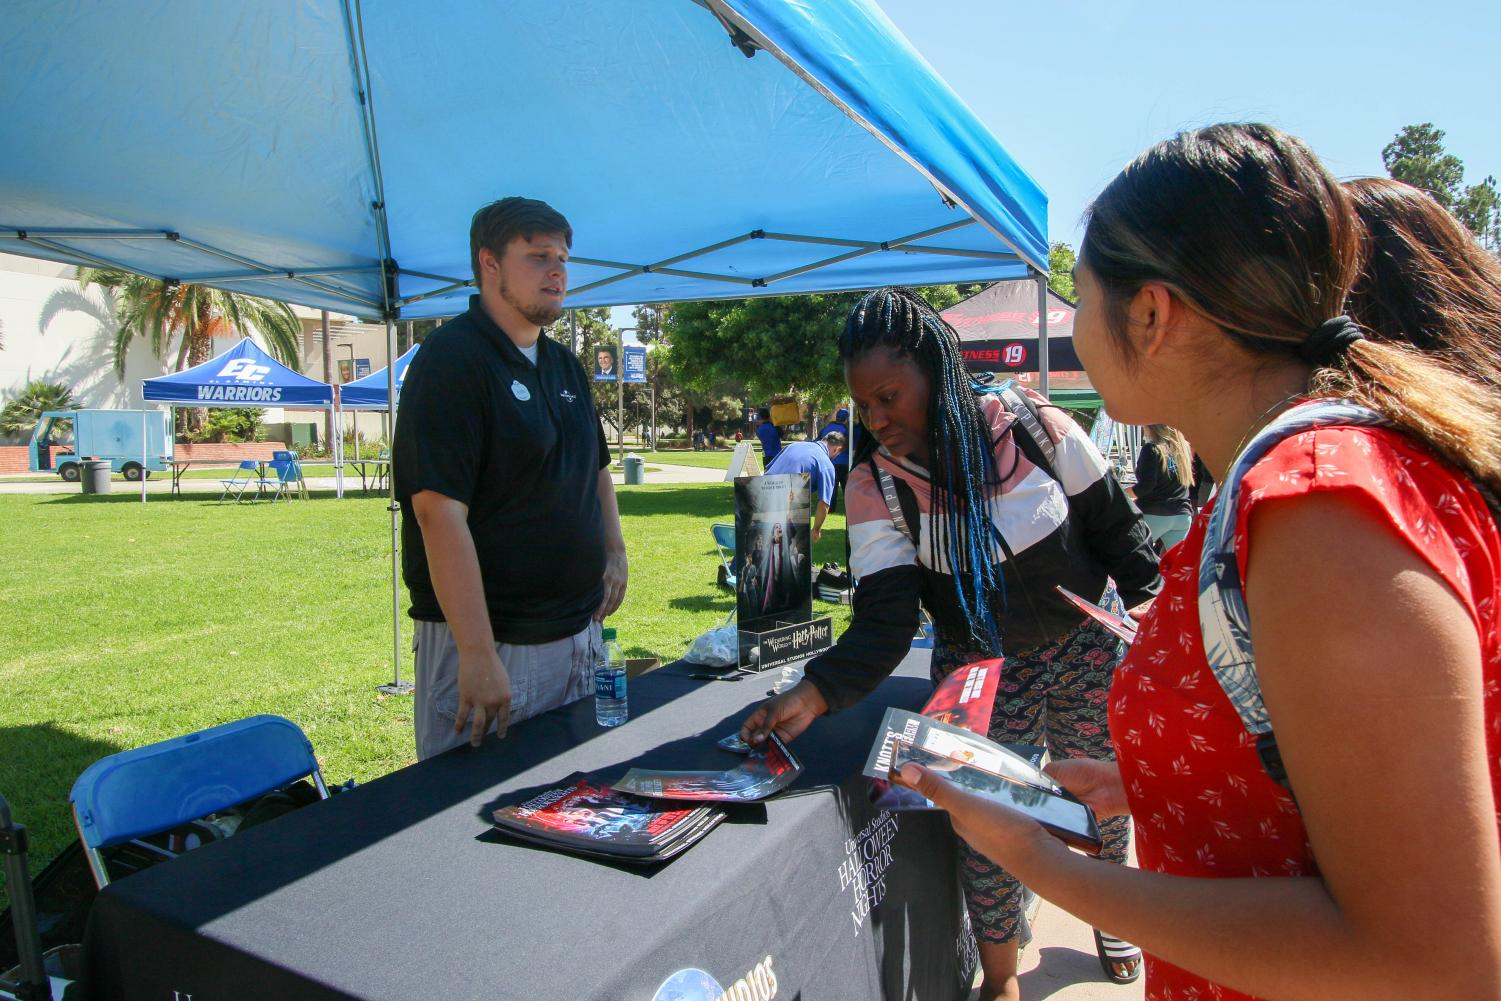 Universal Studios Corporate Sales Representative Austin Jacobs, 23, explains discounts that are offered to El Camino College students during the ASO Discount Fair at the Library Lawn on Wednesday, Oct. 4.